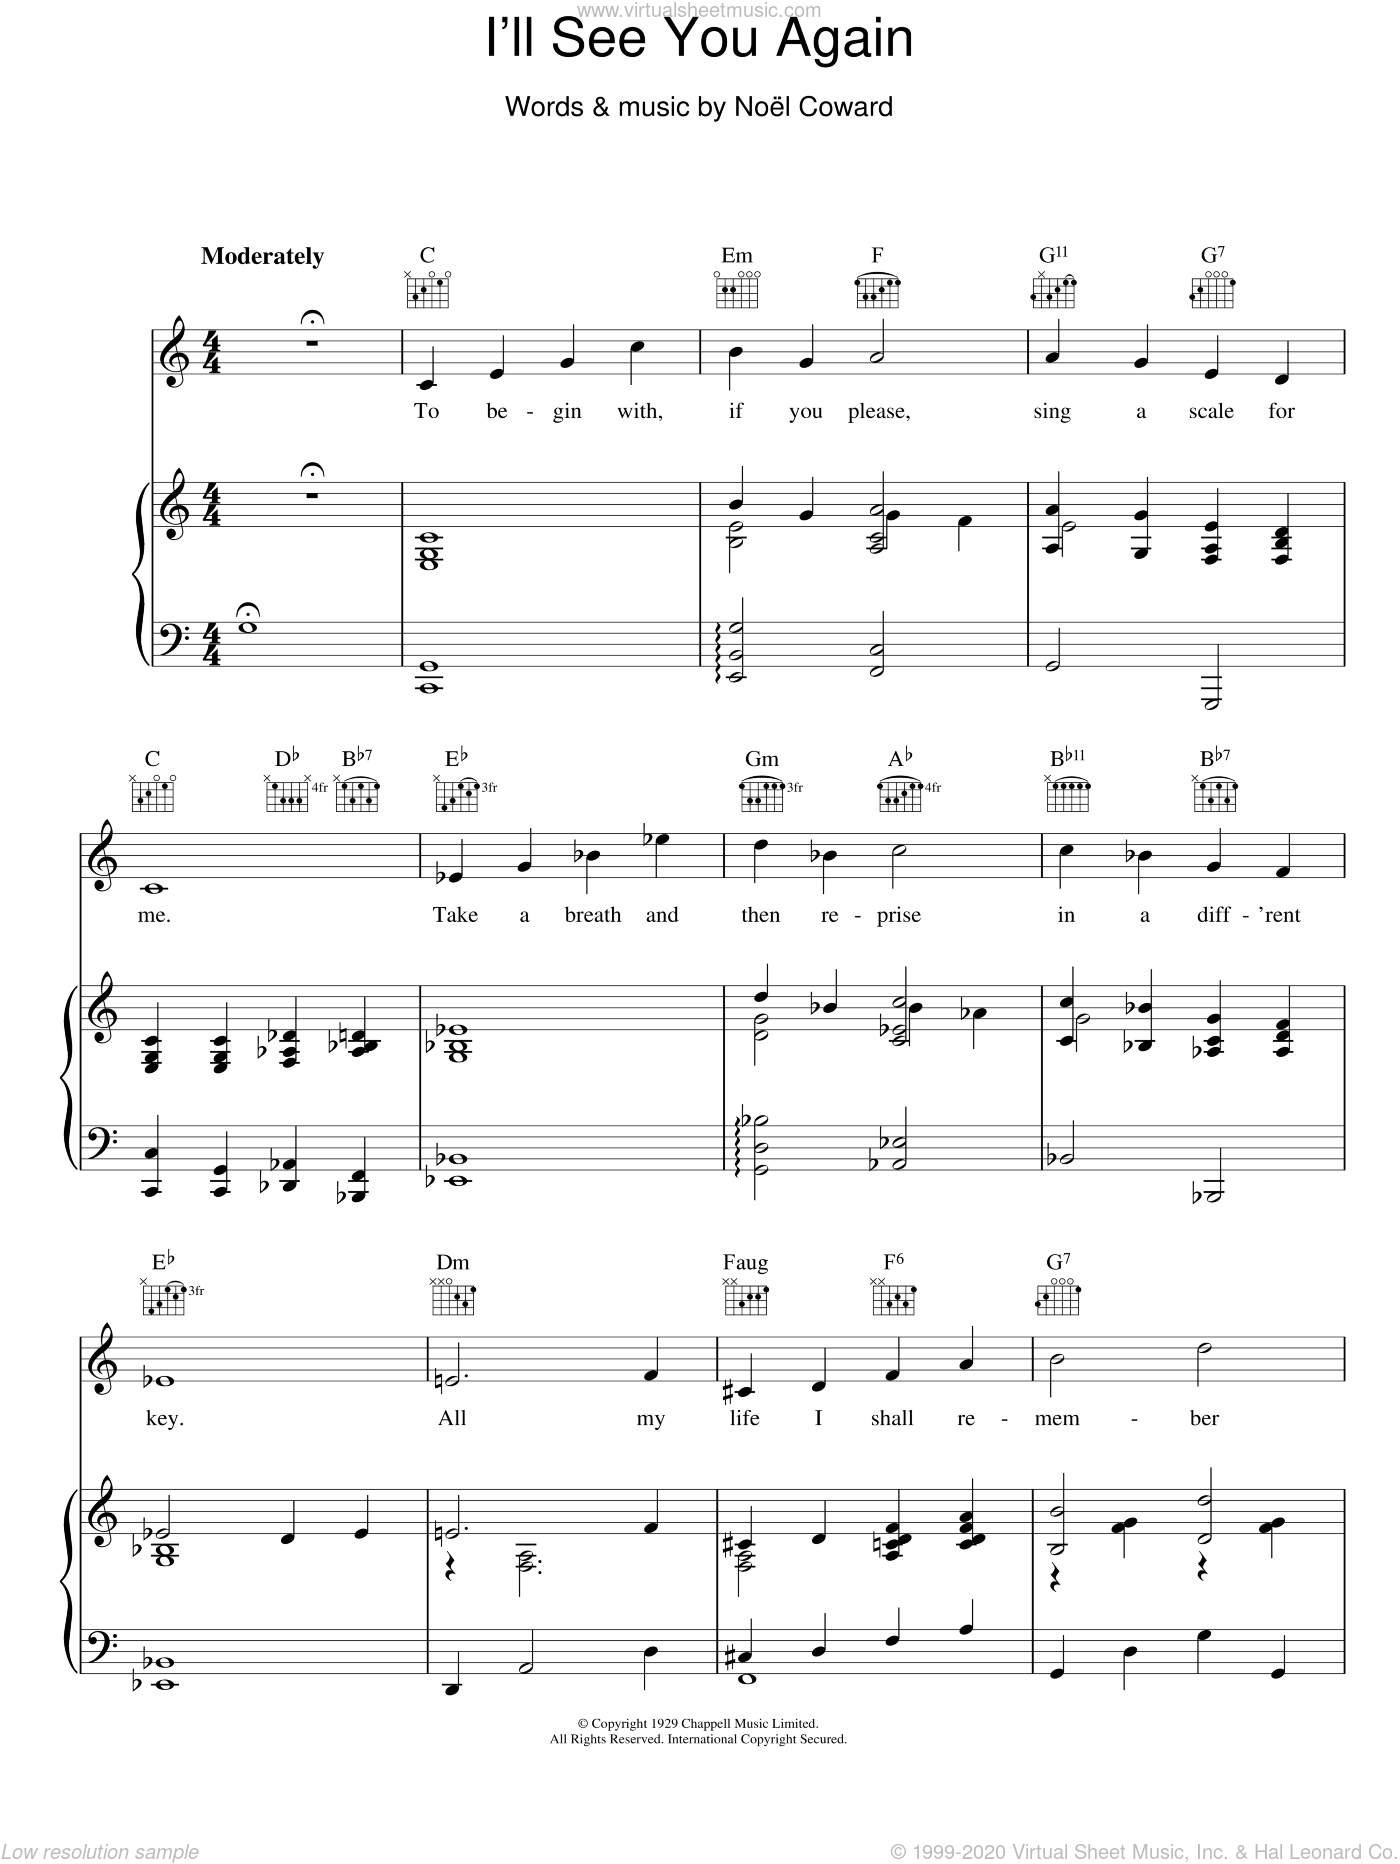 I'll See You Again sheet music for voice, piano or guitar by Noel Coward. Score Image Preview.